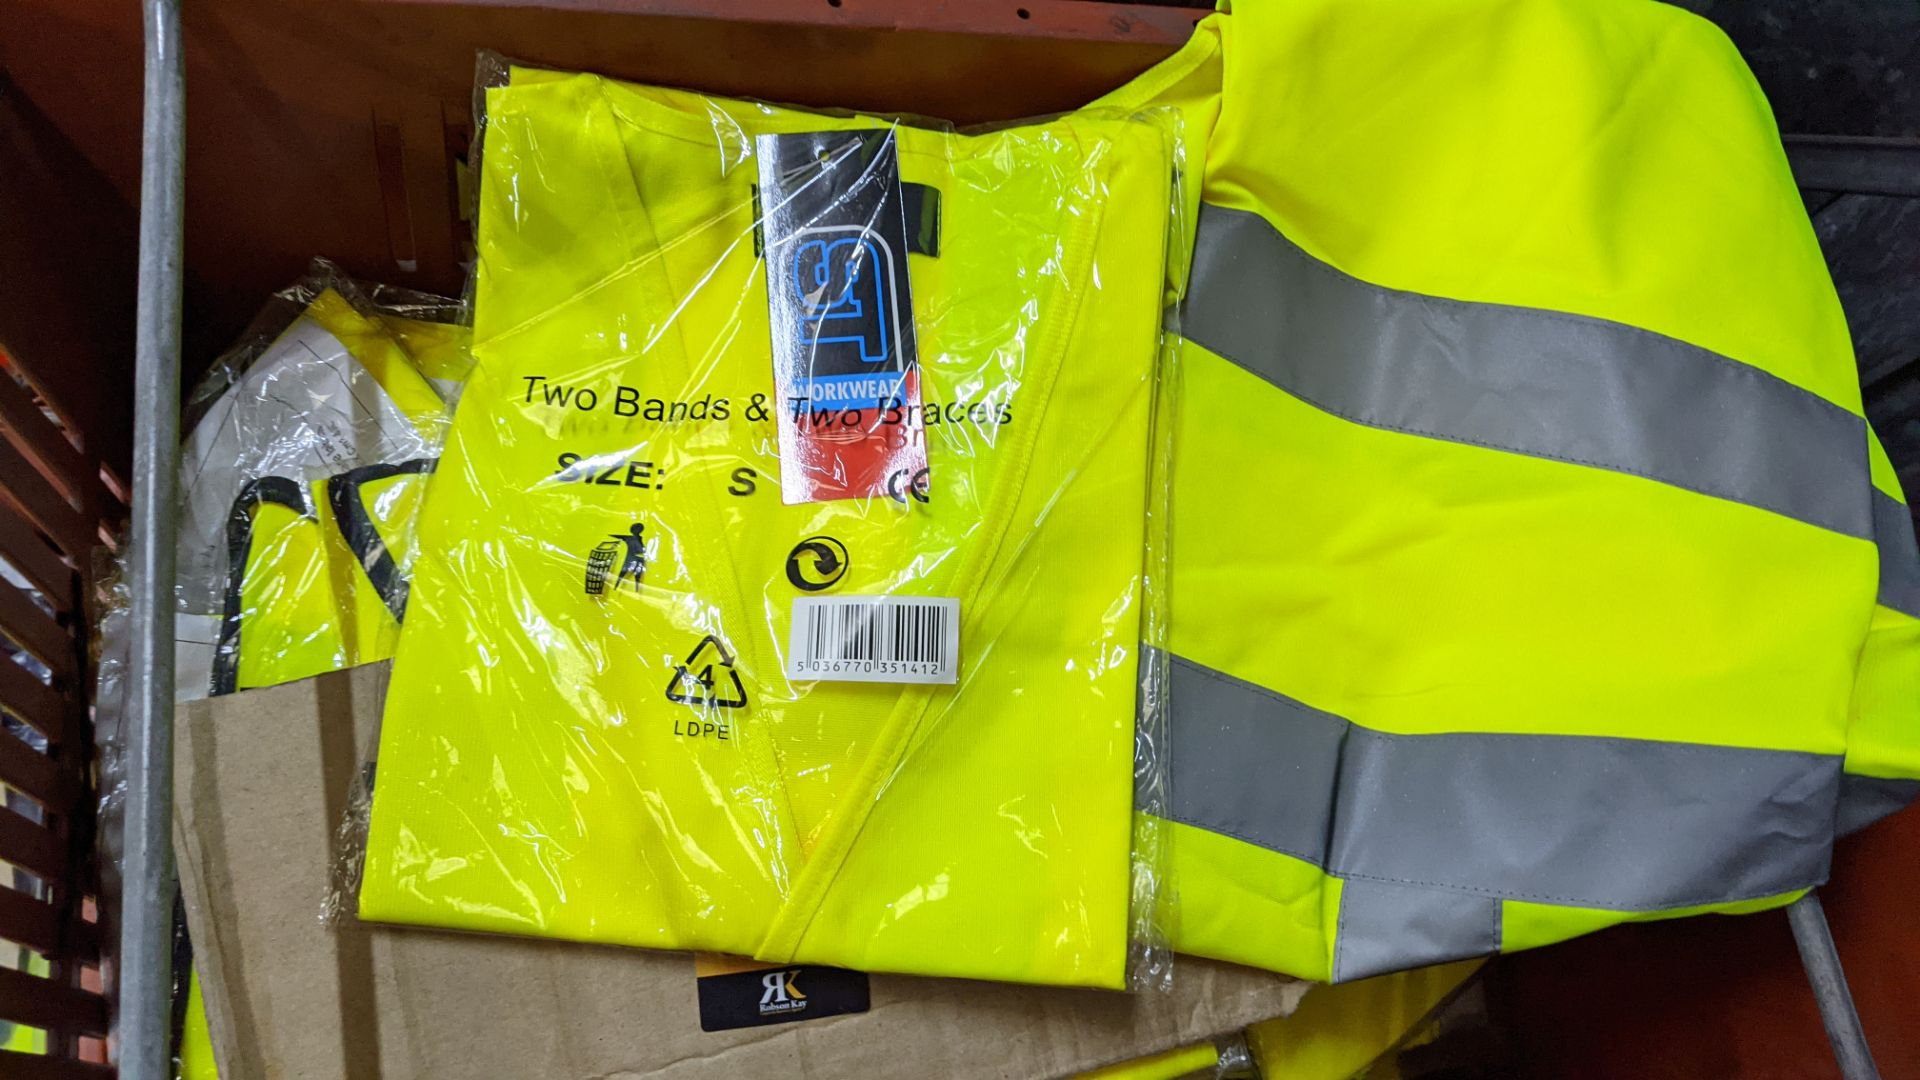 20 off yellow hi-vis vests - Image 3 of 3